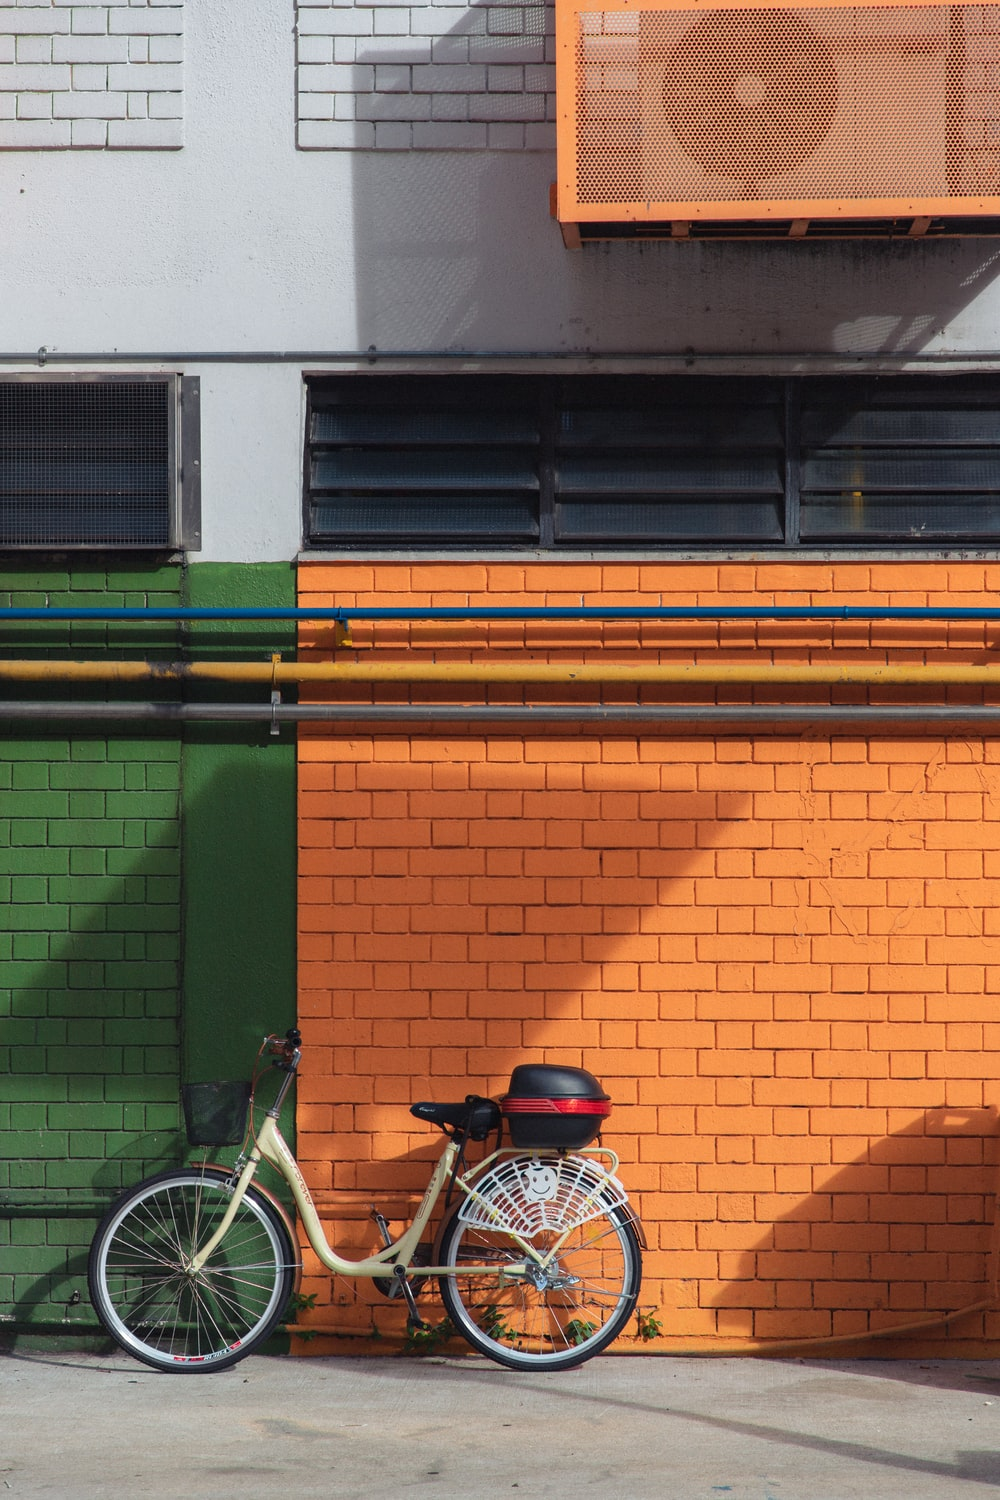 blue and white commuter bike parked beside green and brown concrete building